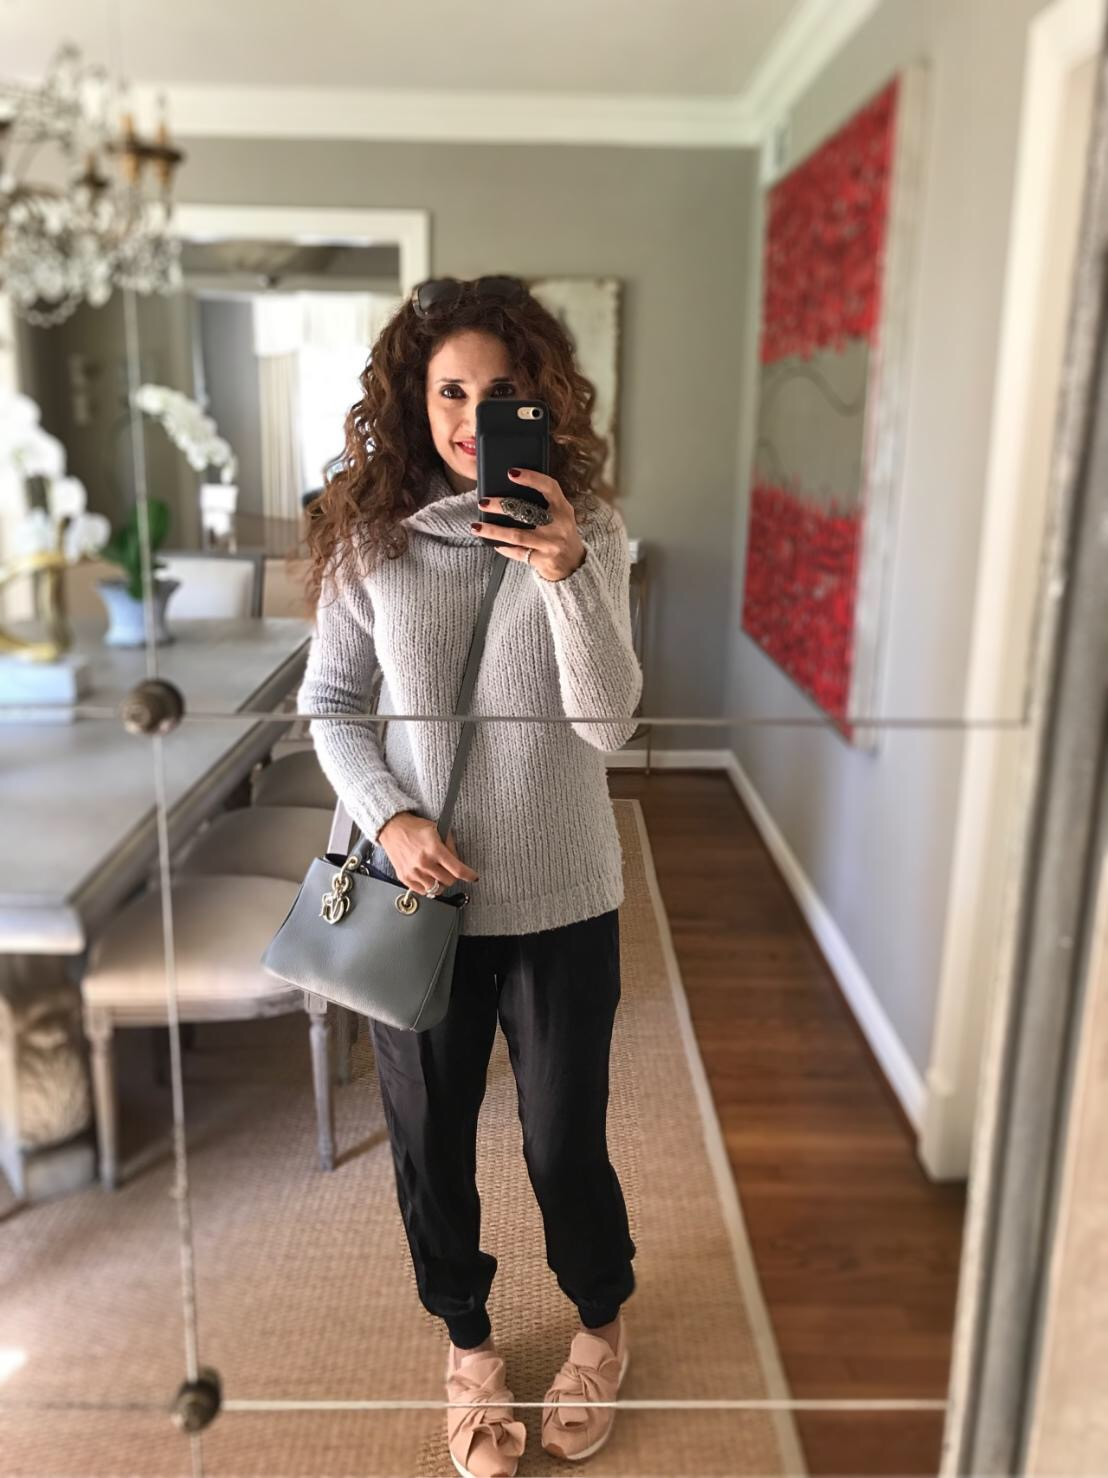 fun sneakers great kicks bow sneakers pink sneakers sneaker rage sneaker trends casuaL chic outfit curly Hair petite blogger dior cross body bag lady dior gray itsbanana